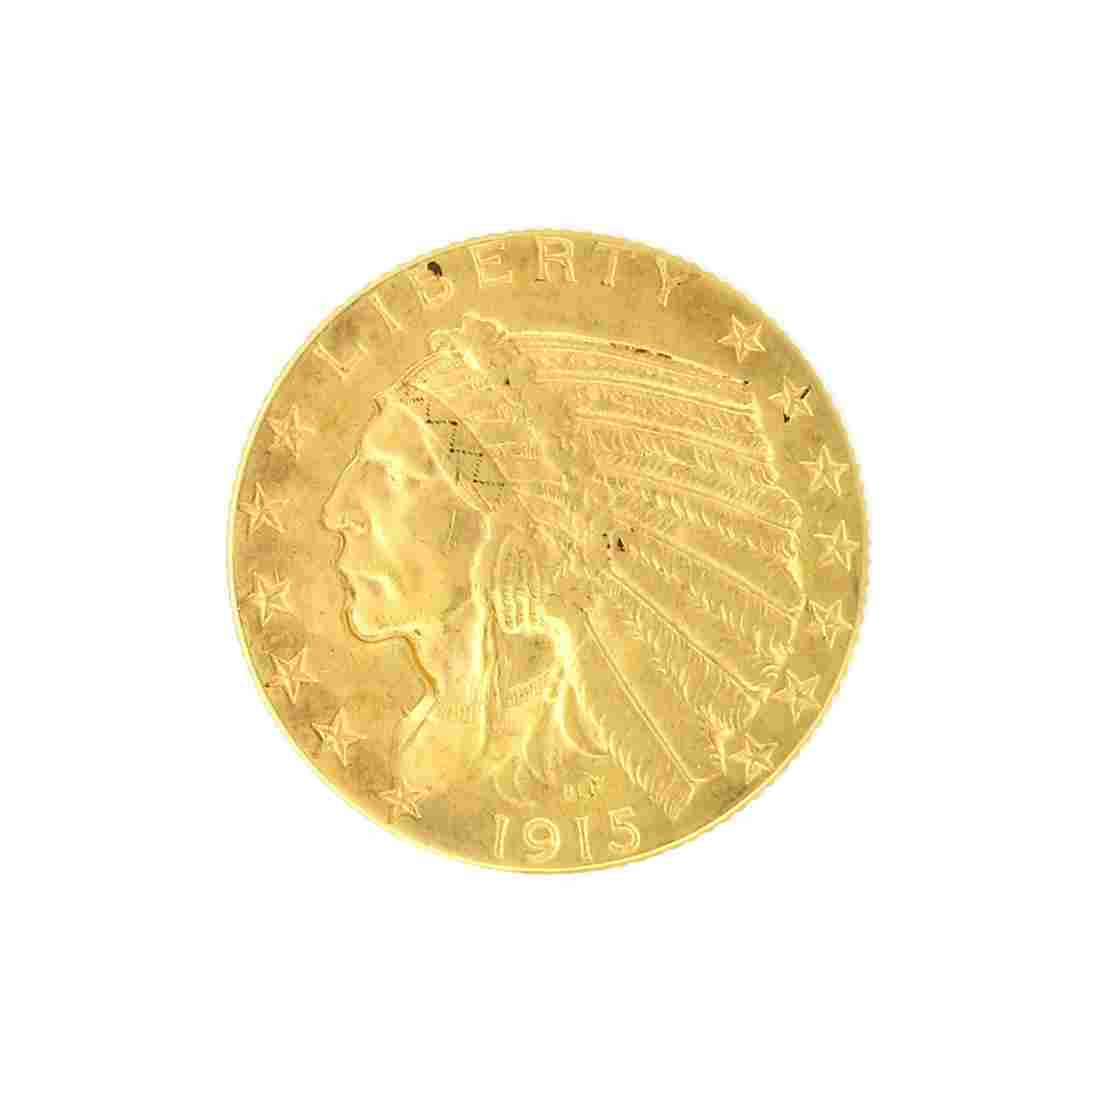 Extremely Rare 1915 $5 U.S. Indian Head Gold Coin